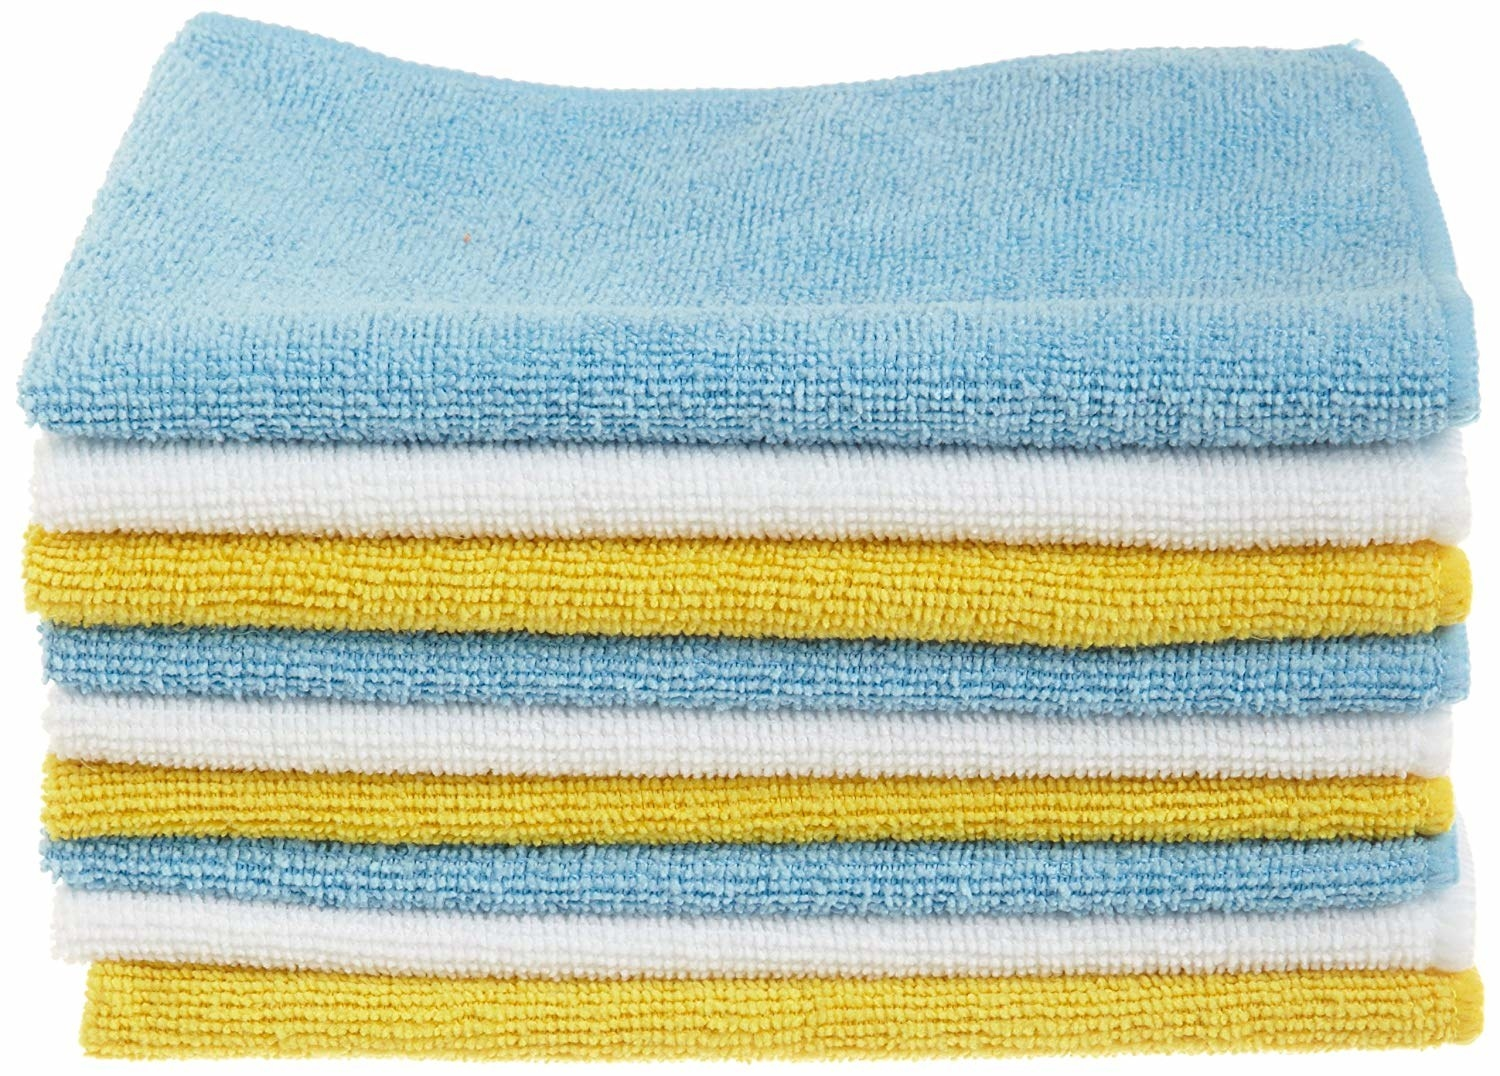 a stack of yellow, blue, and white towels